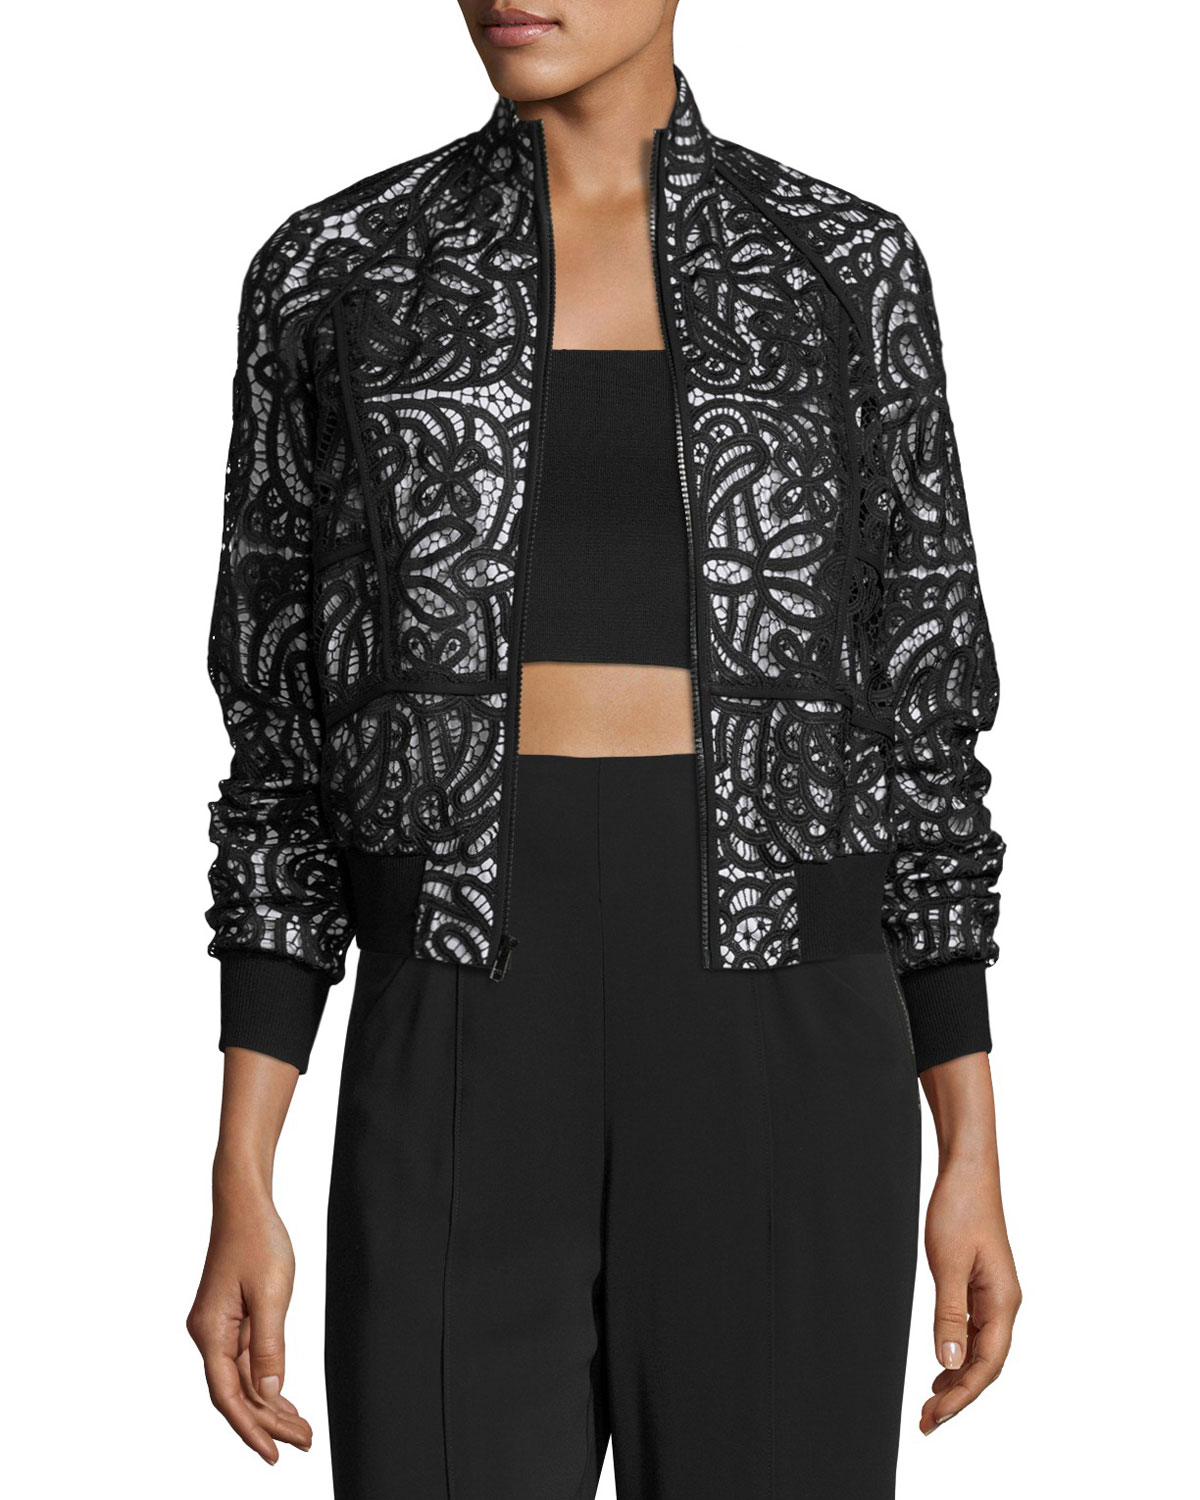 Boxy Paneled Lace Jacket, Black